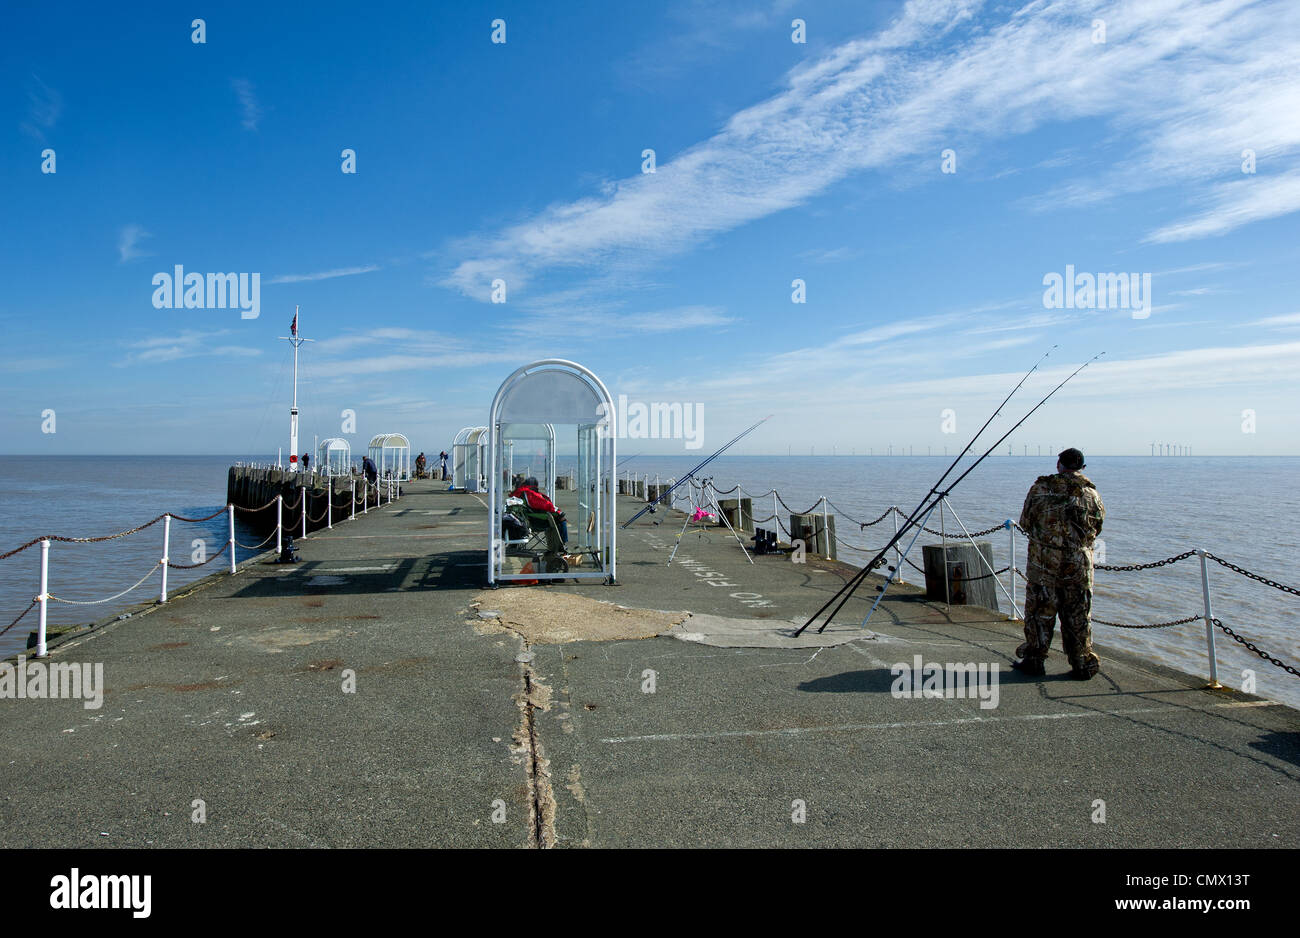 People anglers fishing from Clacton Pier in Essex. - Stock Image